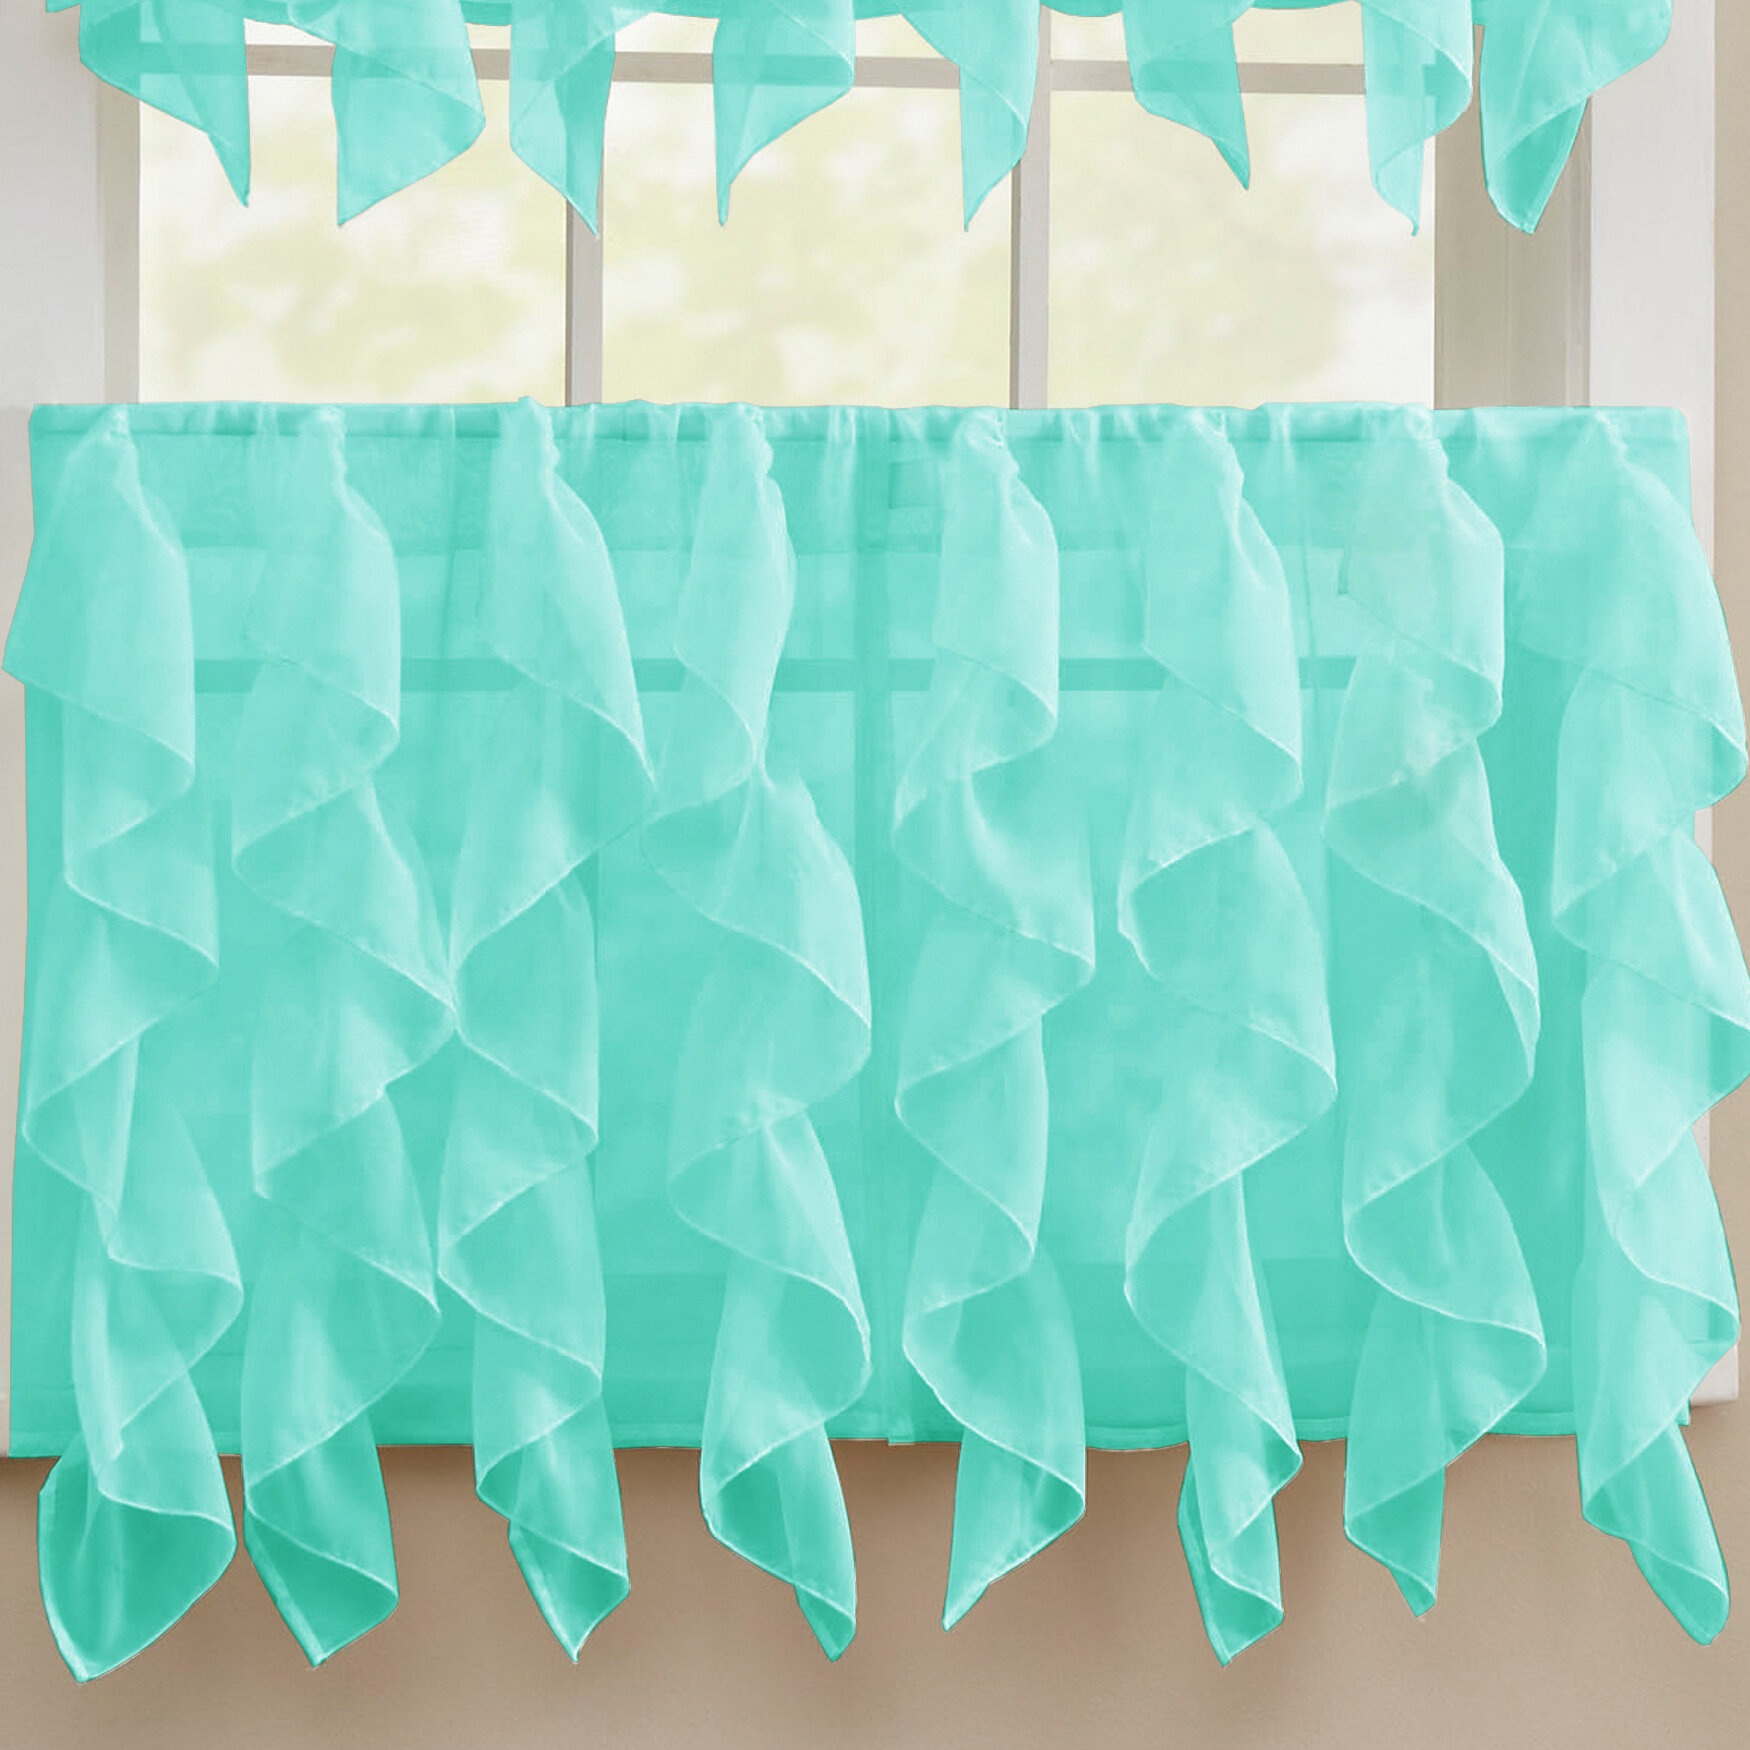 Sweet Home Collection Chic Sheer Voile Vertical Ruffle Window Kitchen Tier  Curtain inside Maize Vertical Ruffled Waterfall Valance and Curtain Tiers (Image 13 of 20)